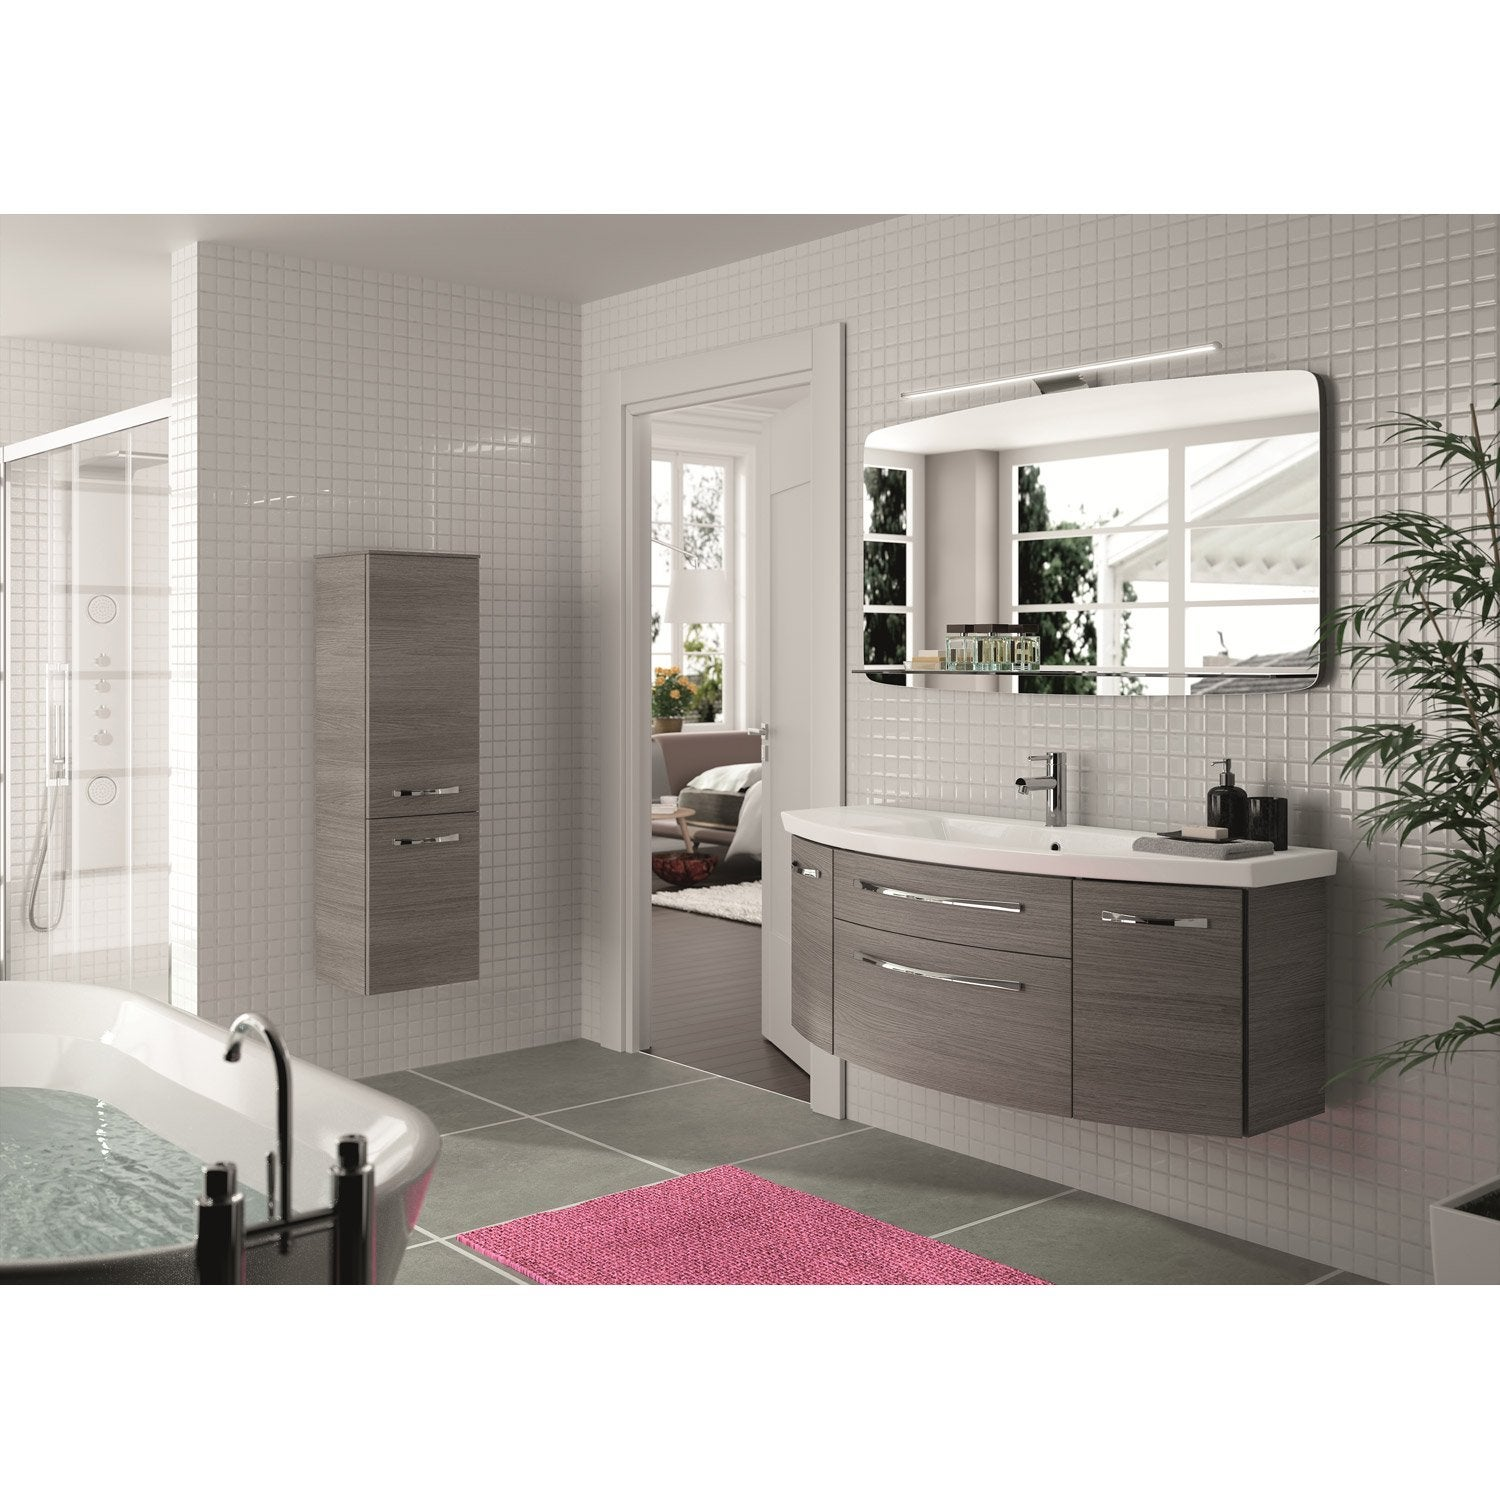 meuble de salle de bains plus de 120 gris argent image. Black Bedroom Furniture Sets. Home Design Ideas